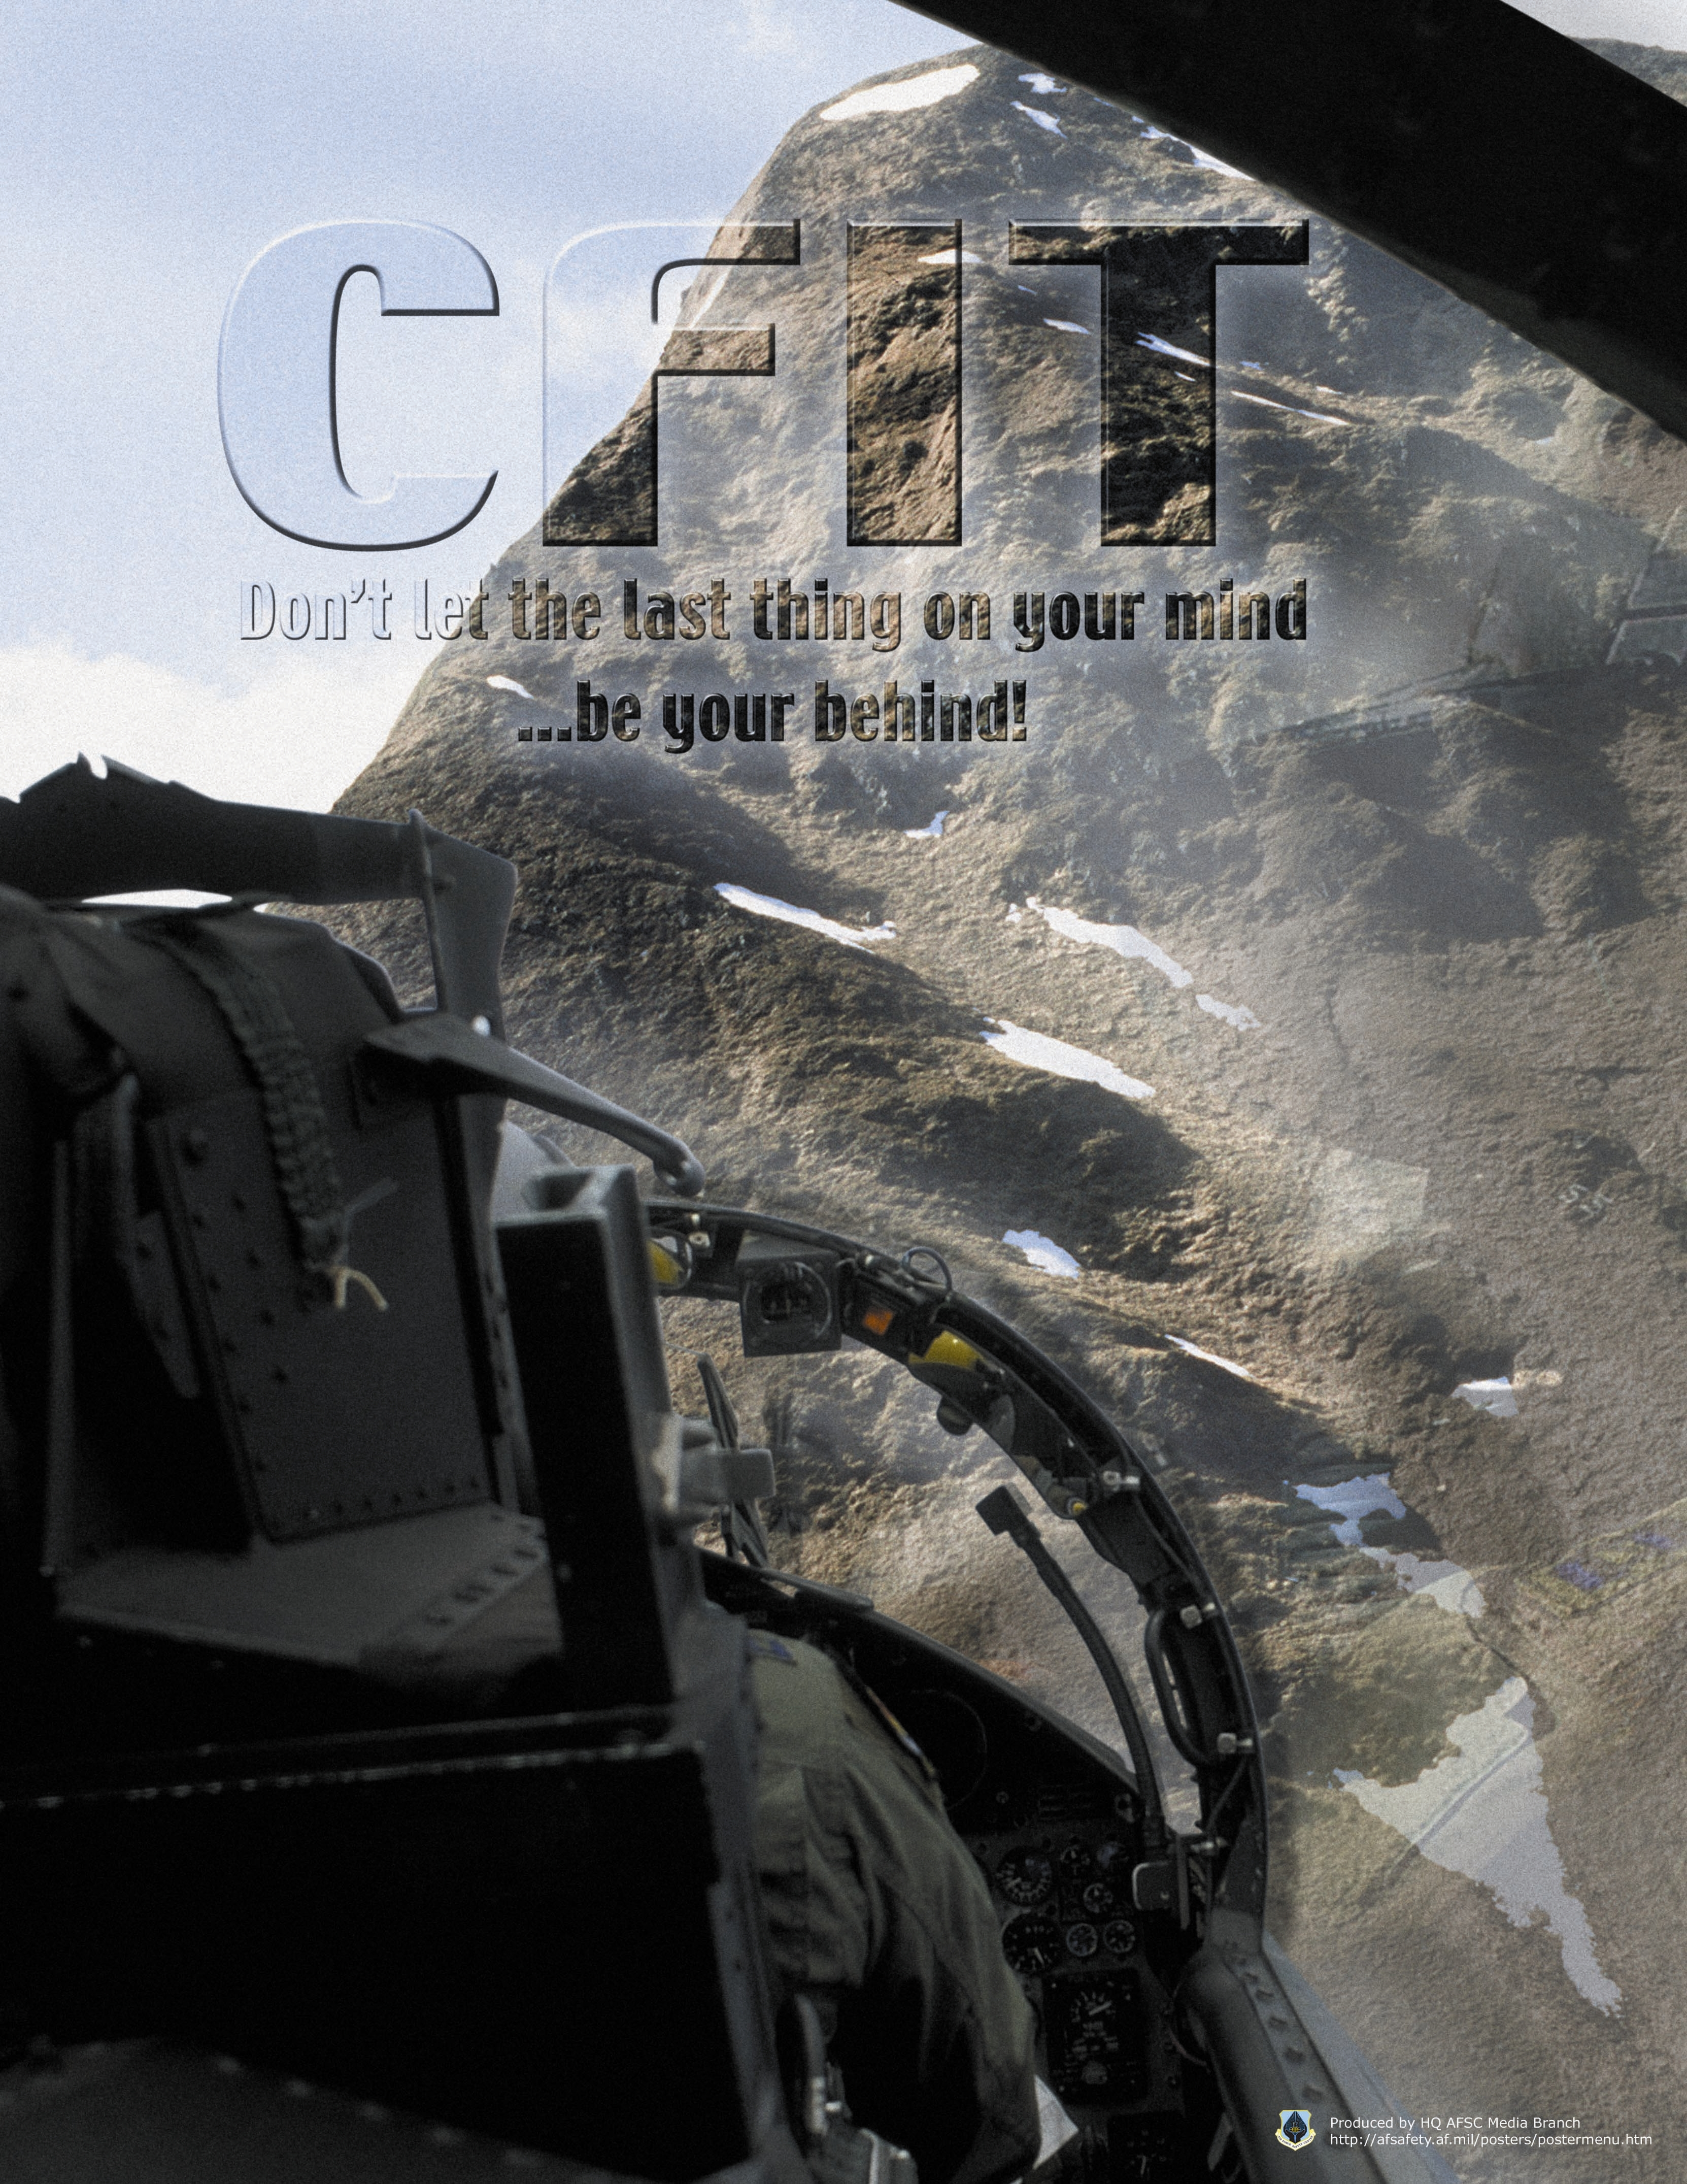 For years, the service has used posters like this to impress upon pilots the dangers posed by  Controlled Flight into Terrain,  or  CFIT.